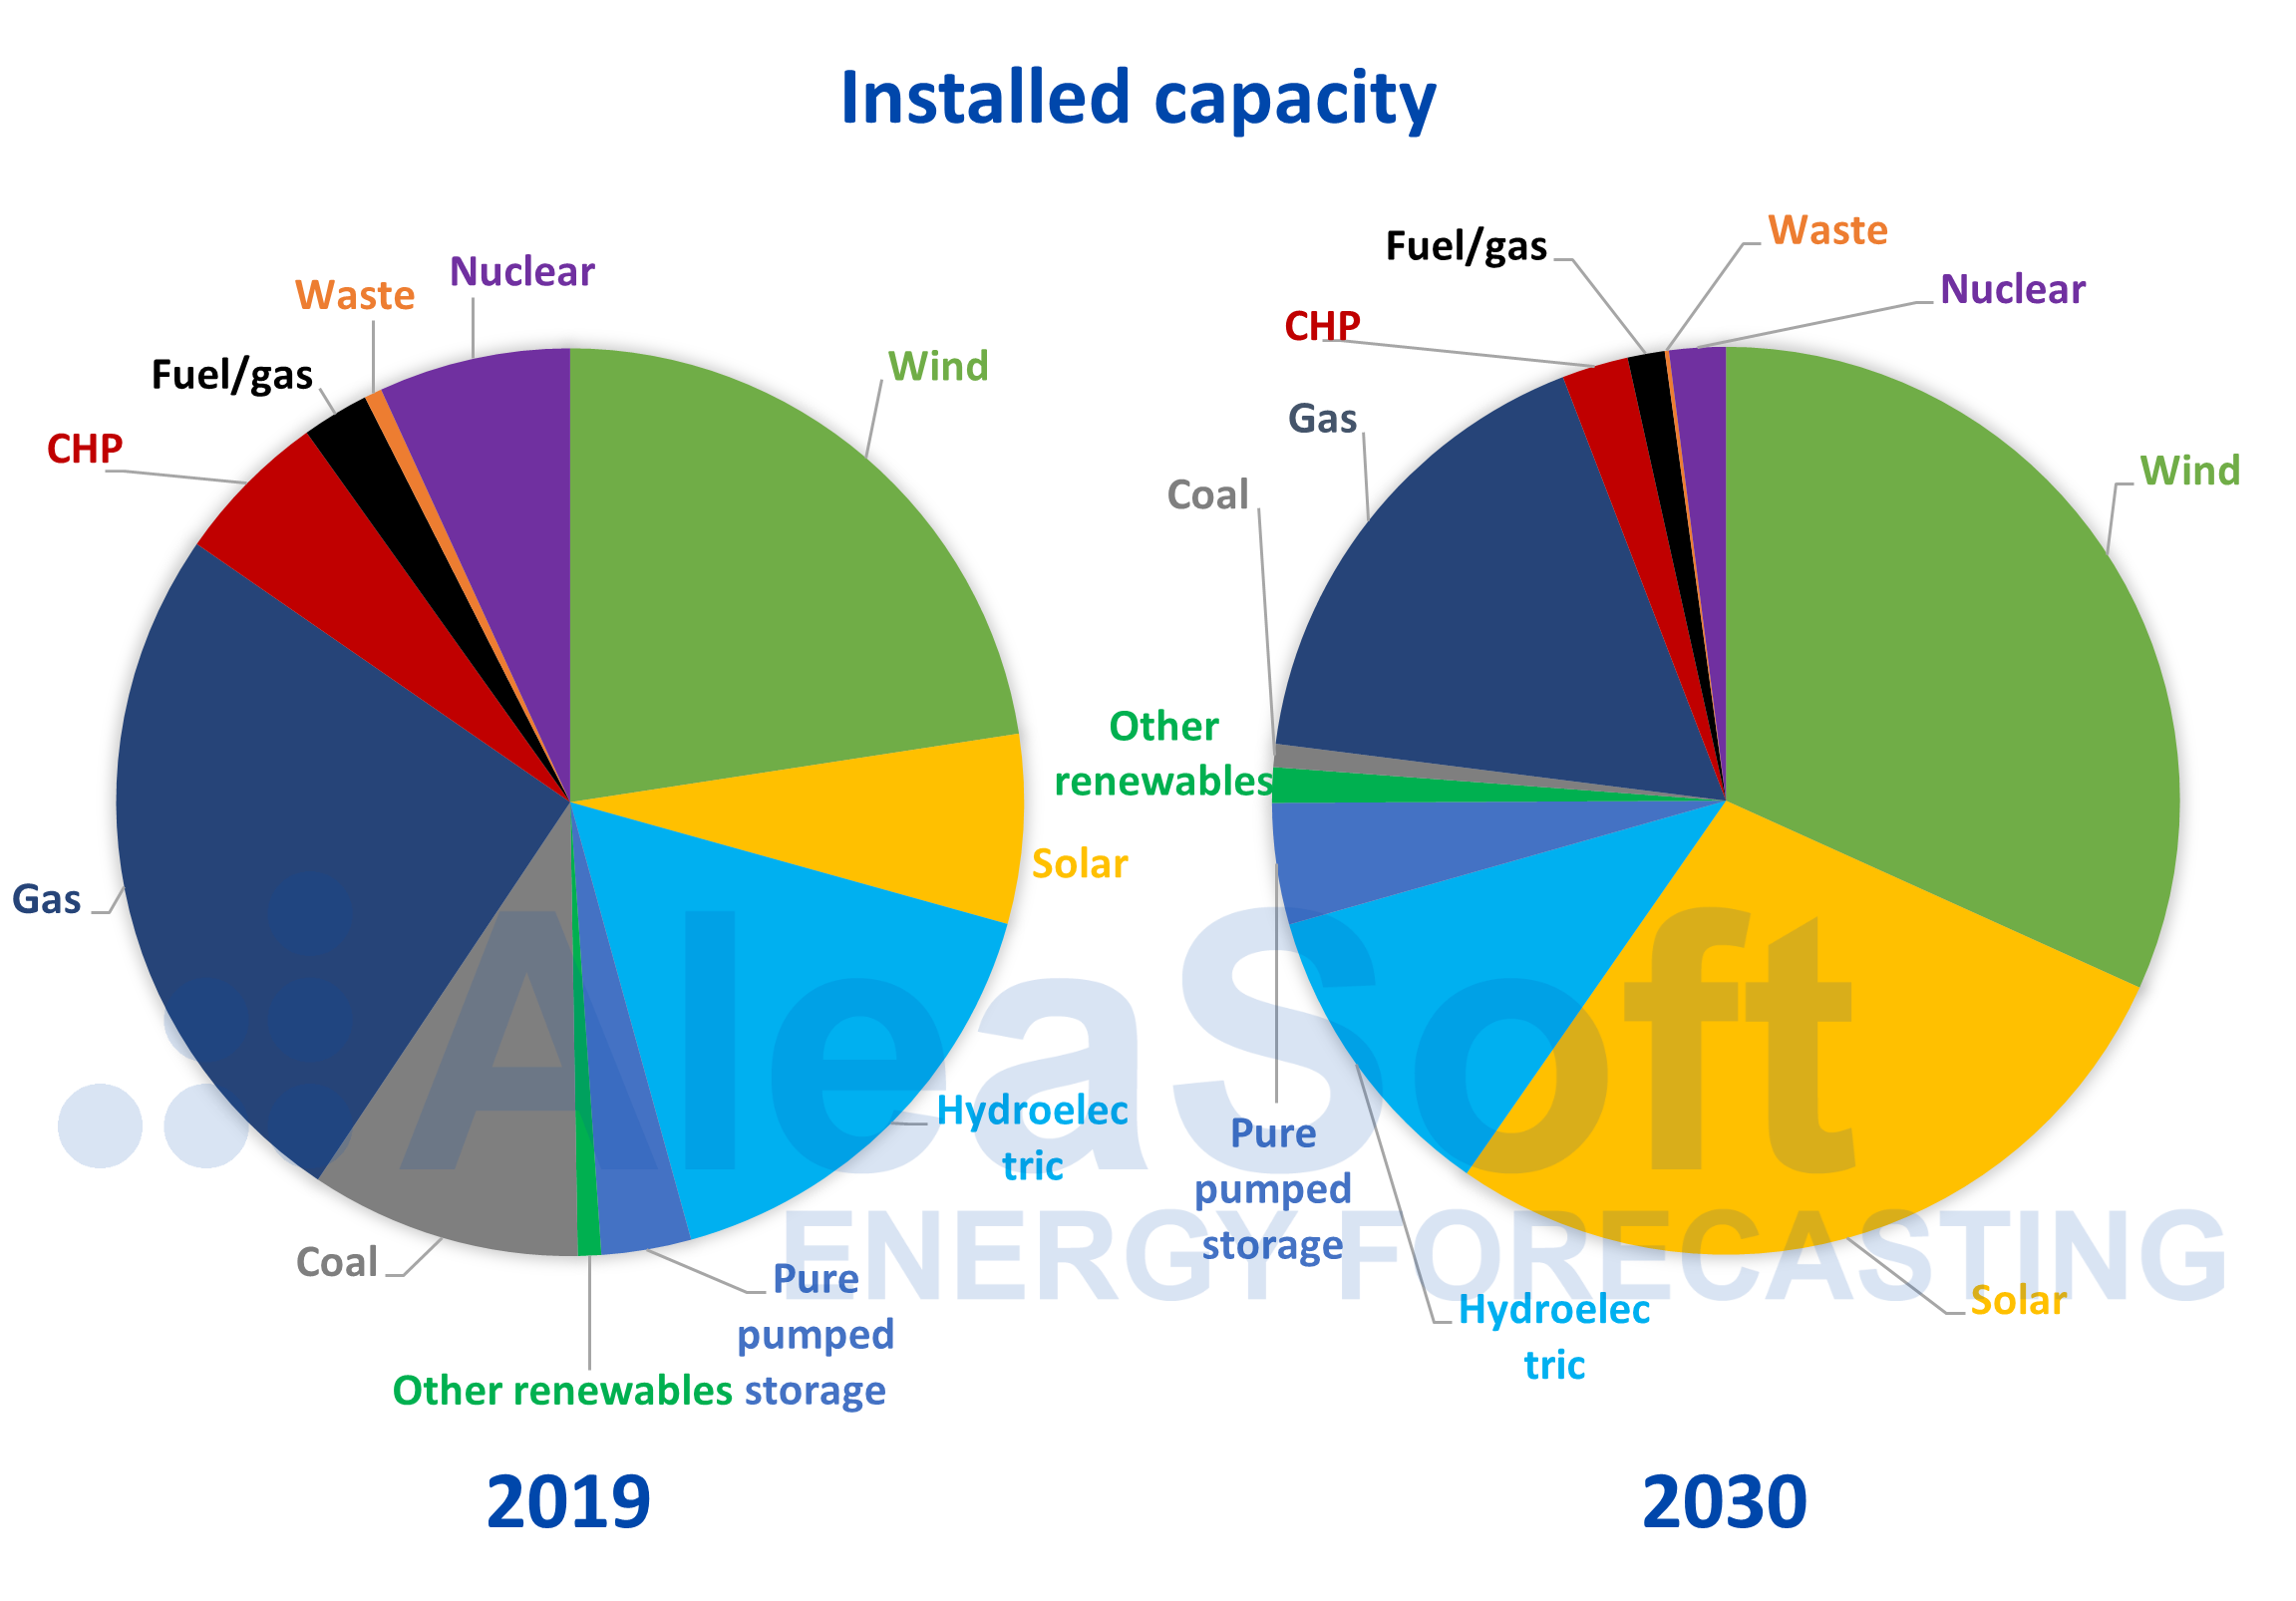 AleaSoft -Electricity installed capacity Spain